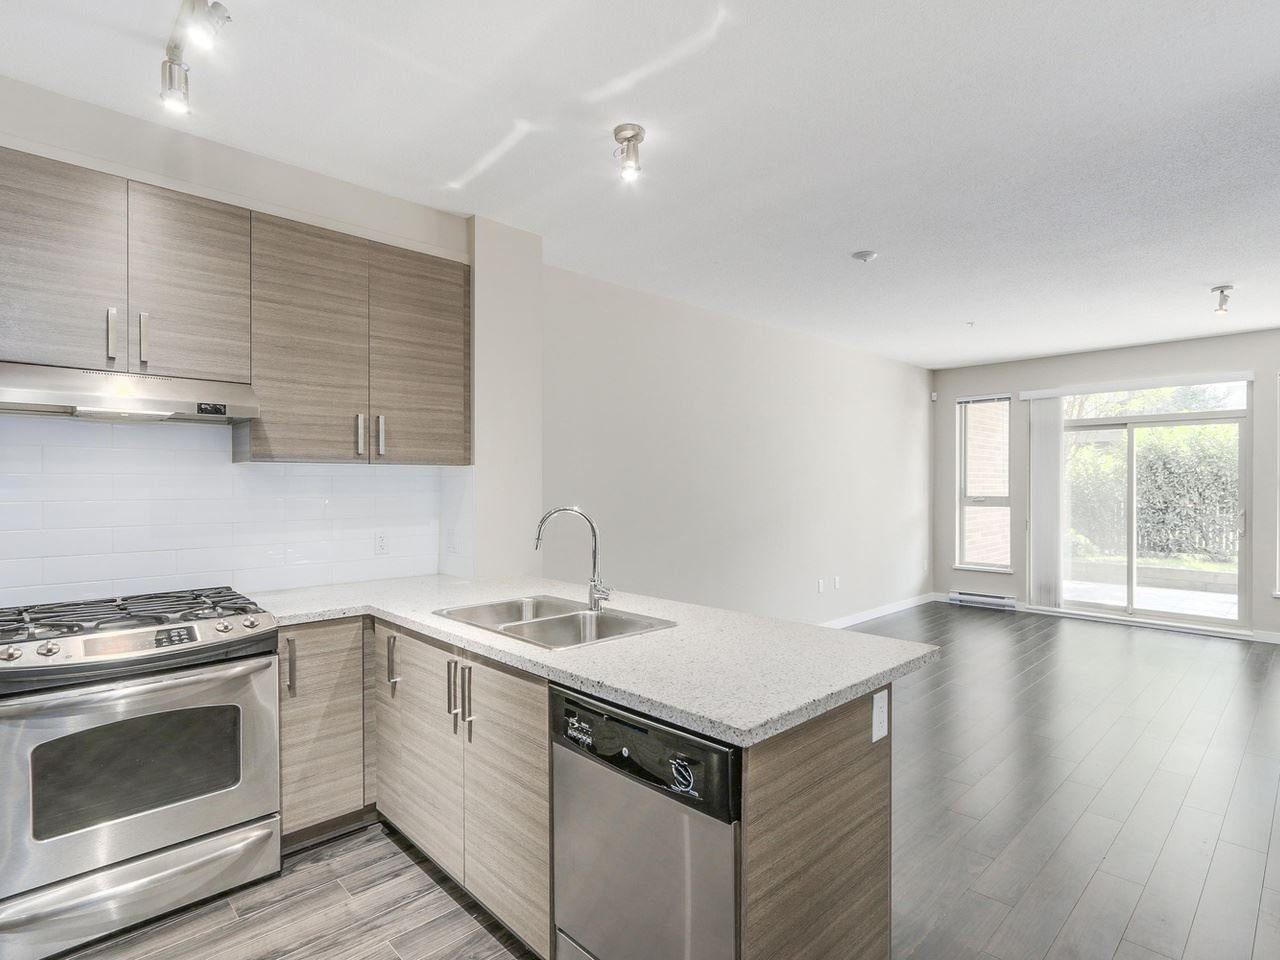 """Photo 4: Photos: 108 1150 KENSAL Place in Coquitlam: New Horizons Condo for sale in """"Windsor Gate"""" : MLS®# R2102595"""